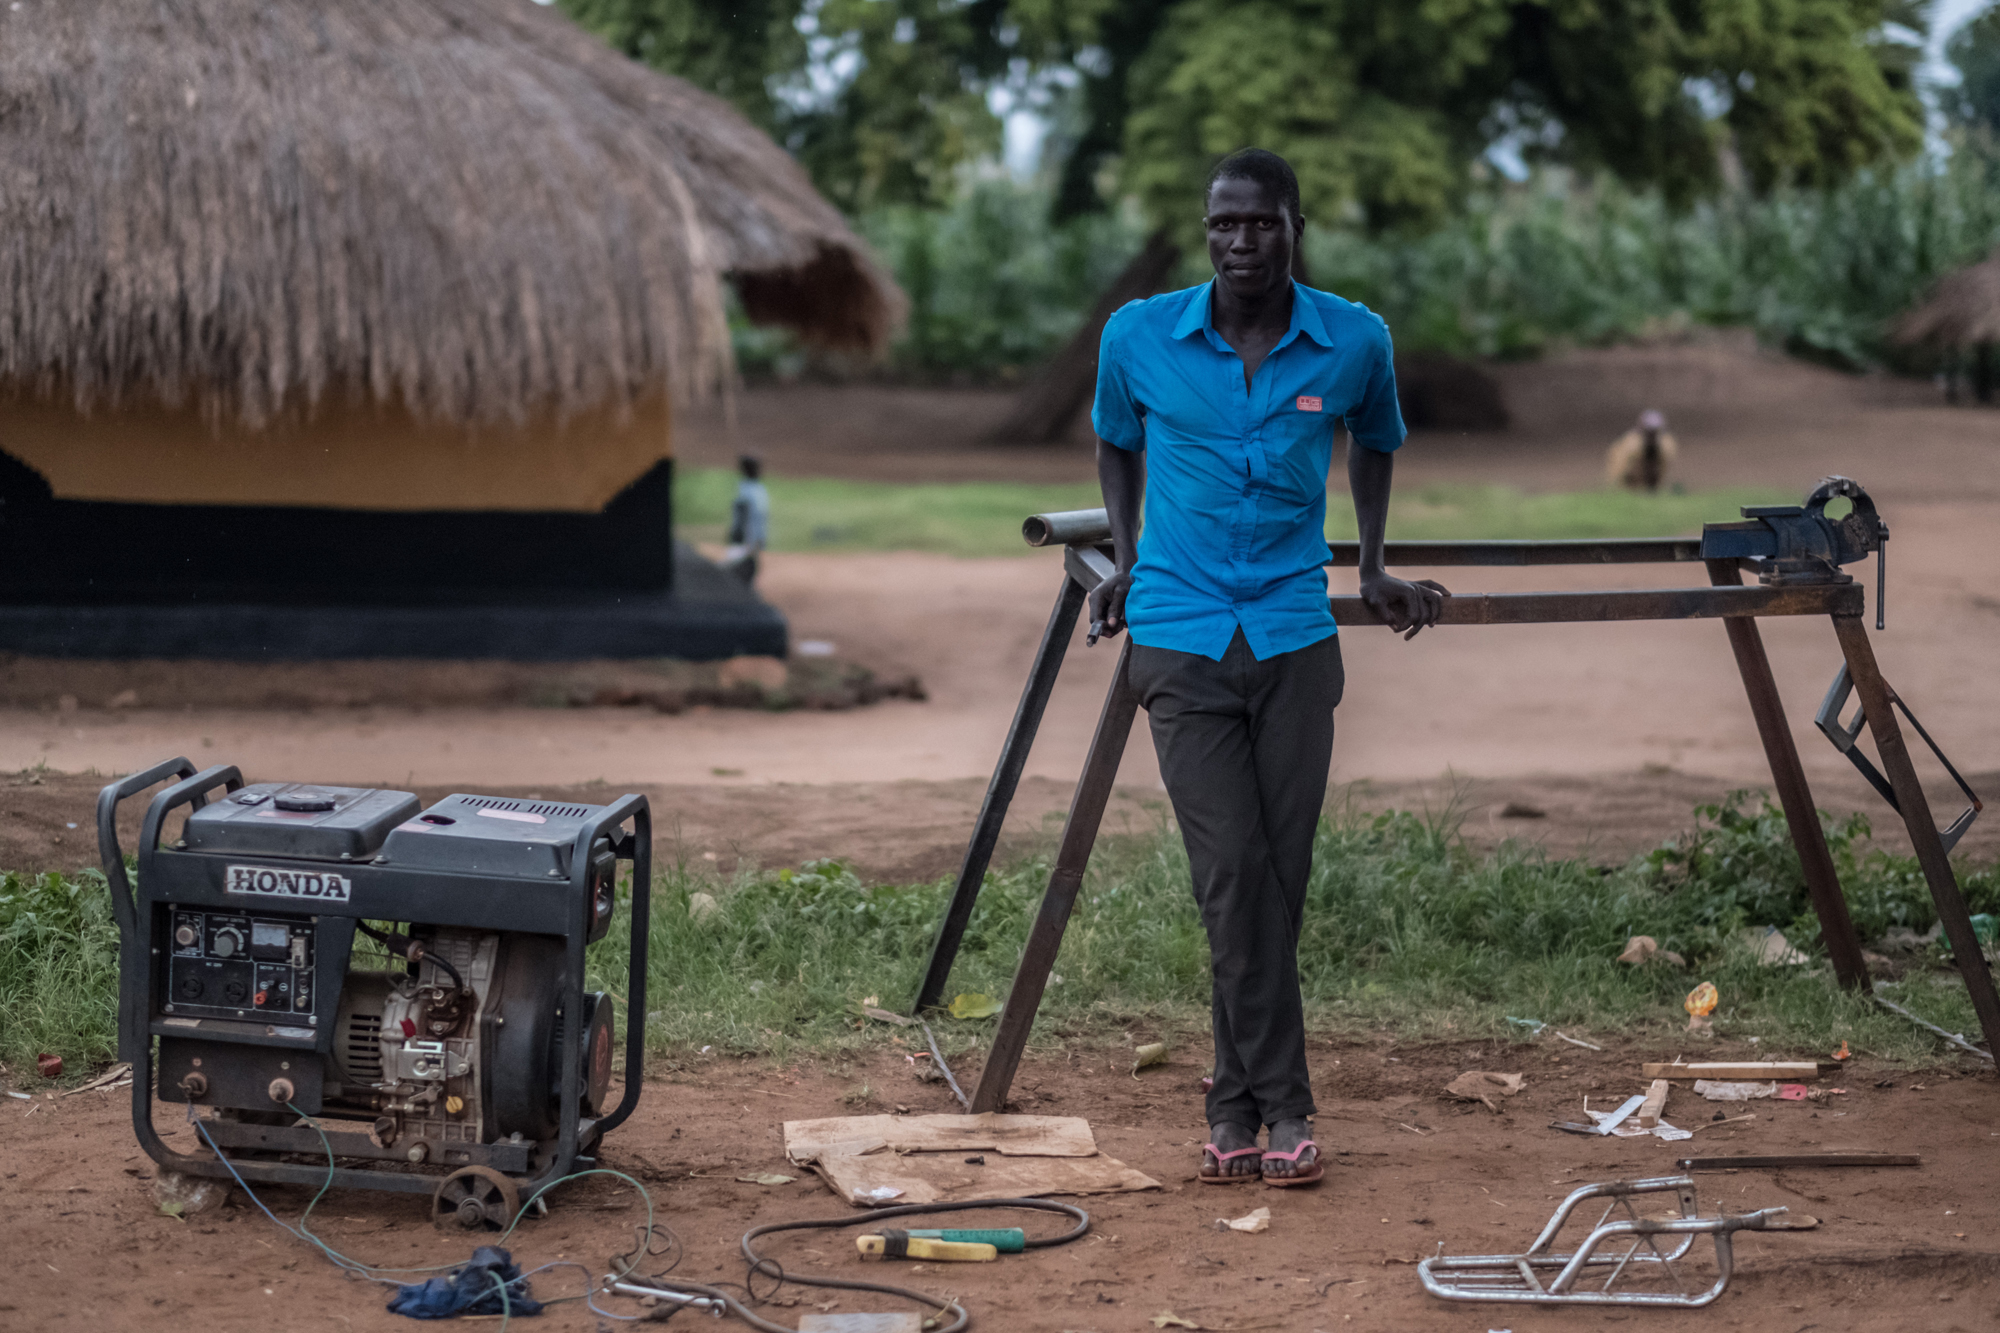 A young man working on a generator in Uganda.